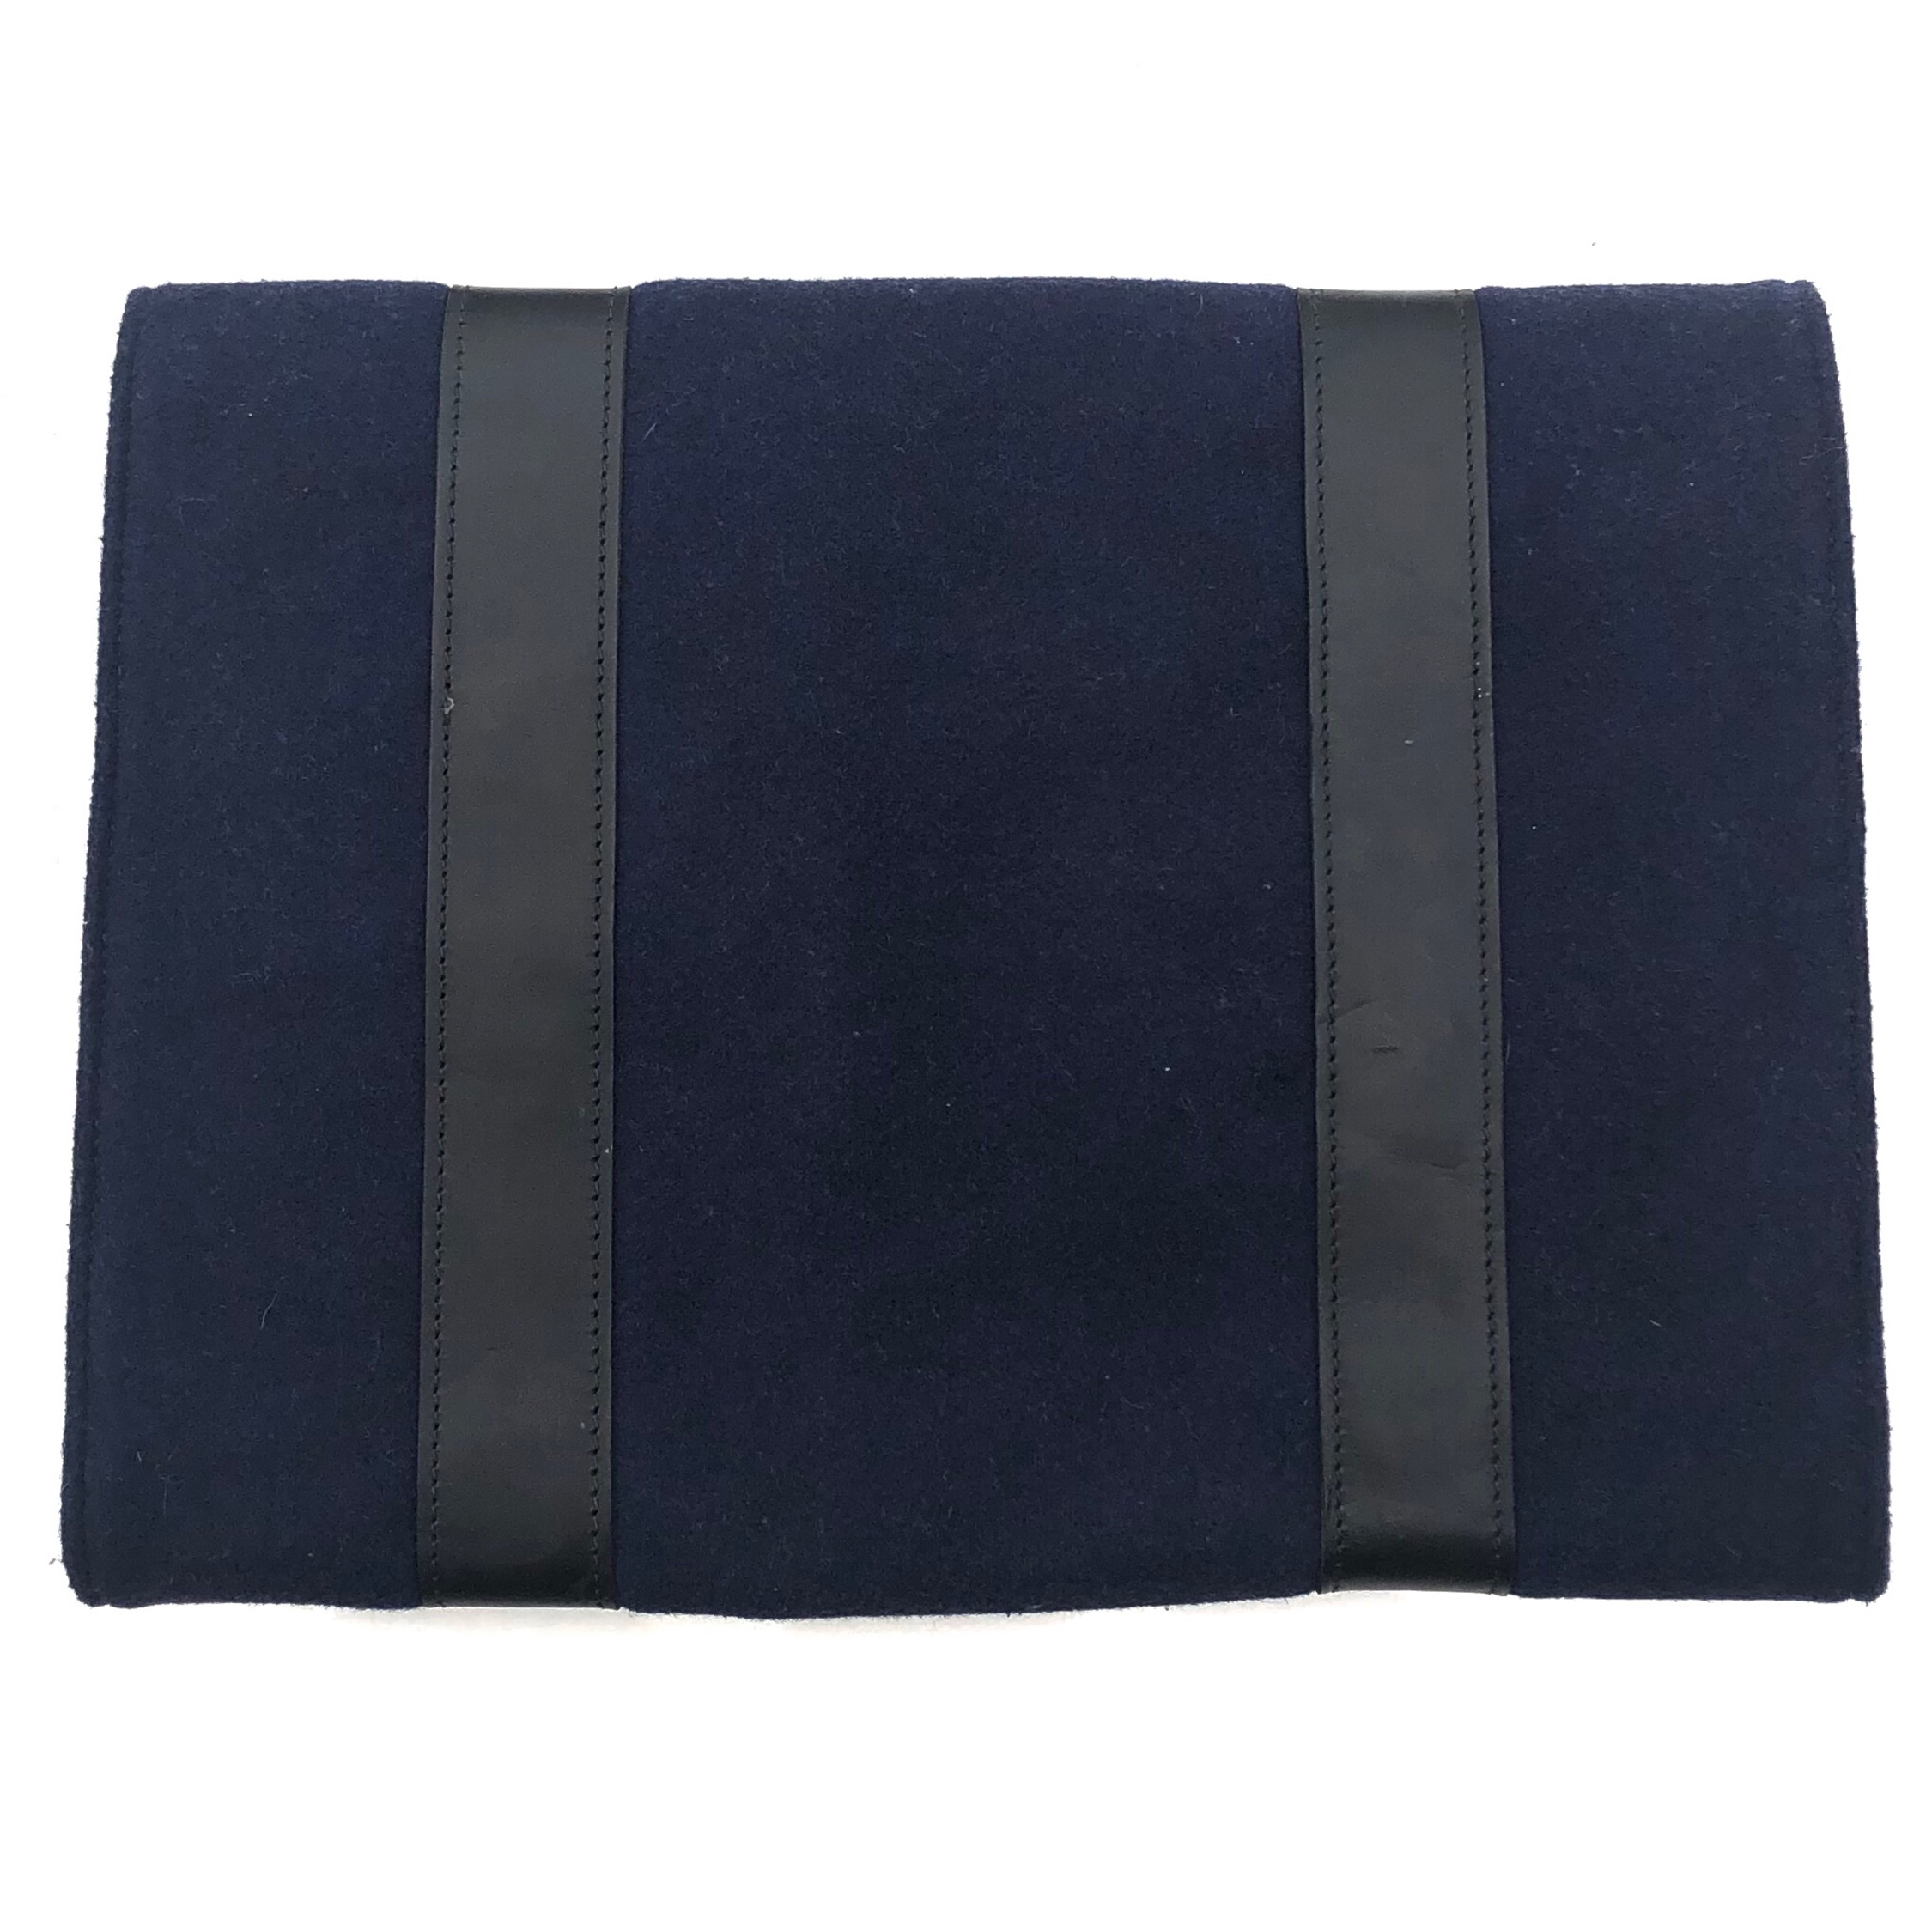 Authentic Christian Dior Navy Blwool